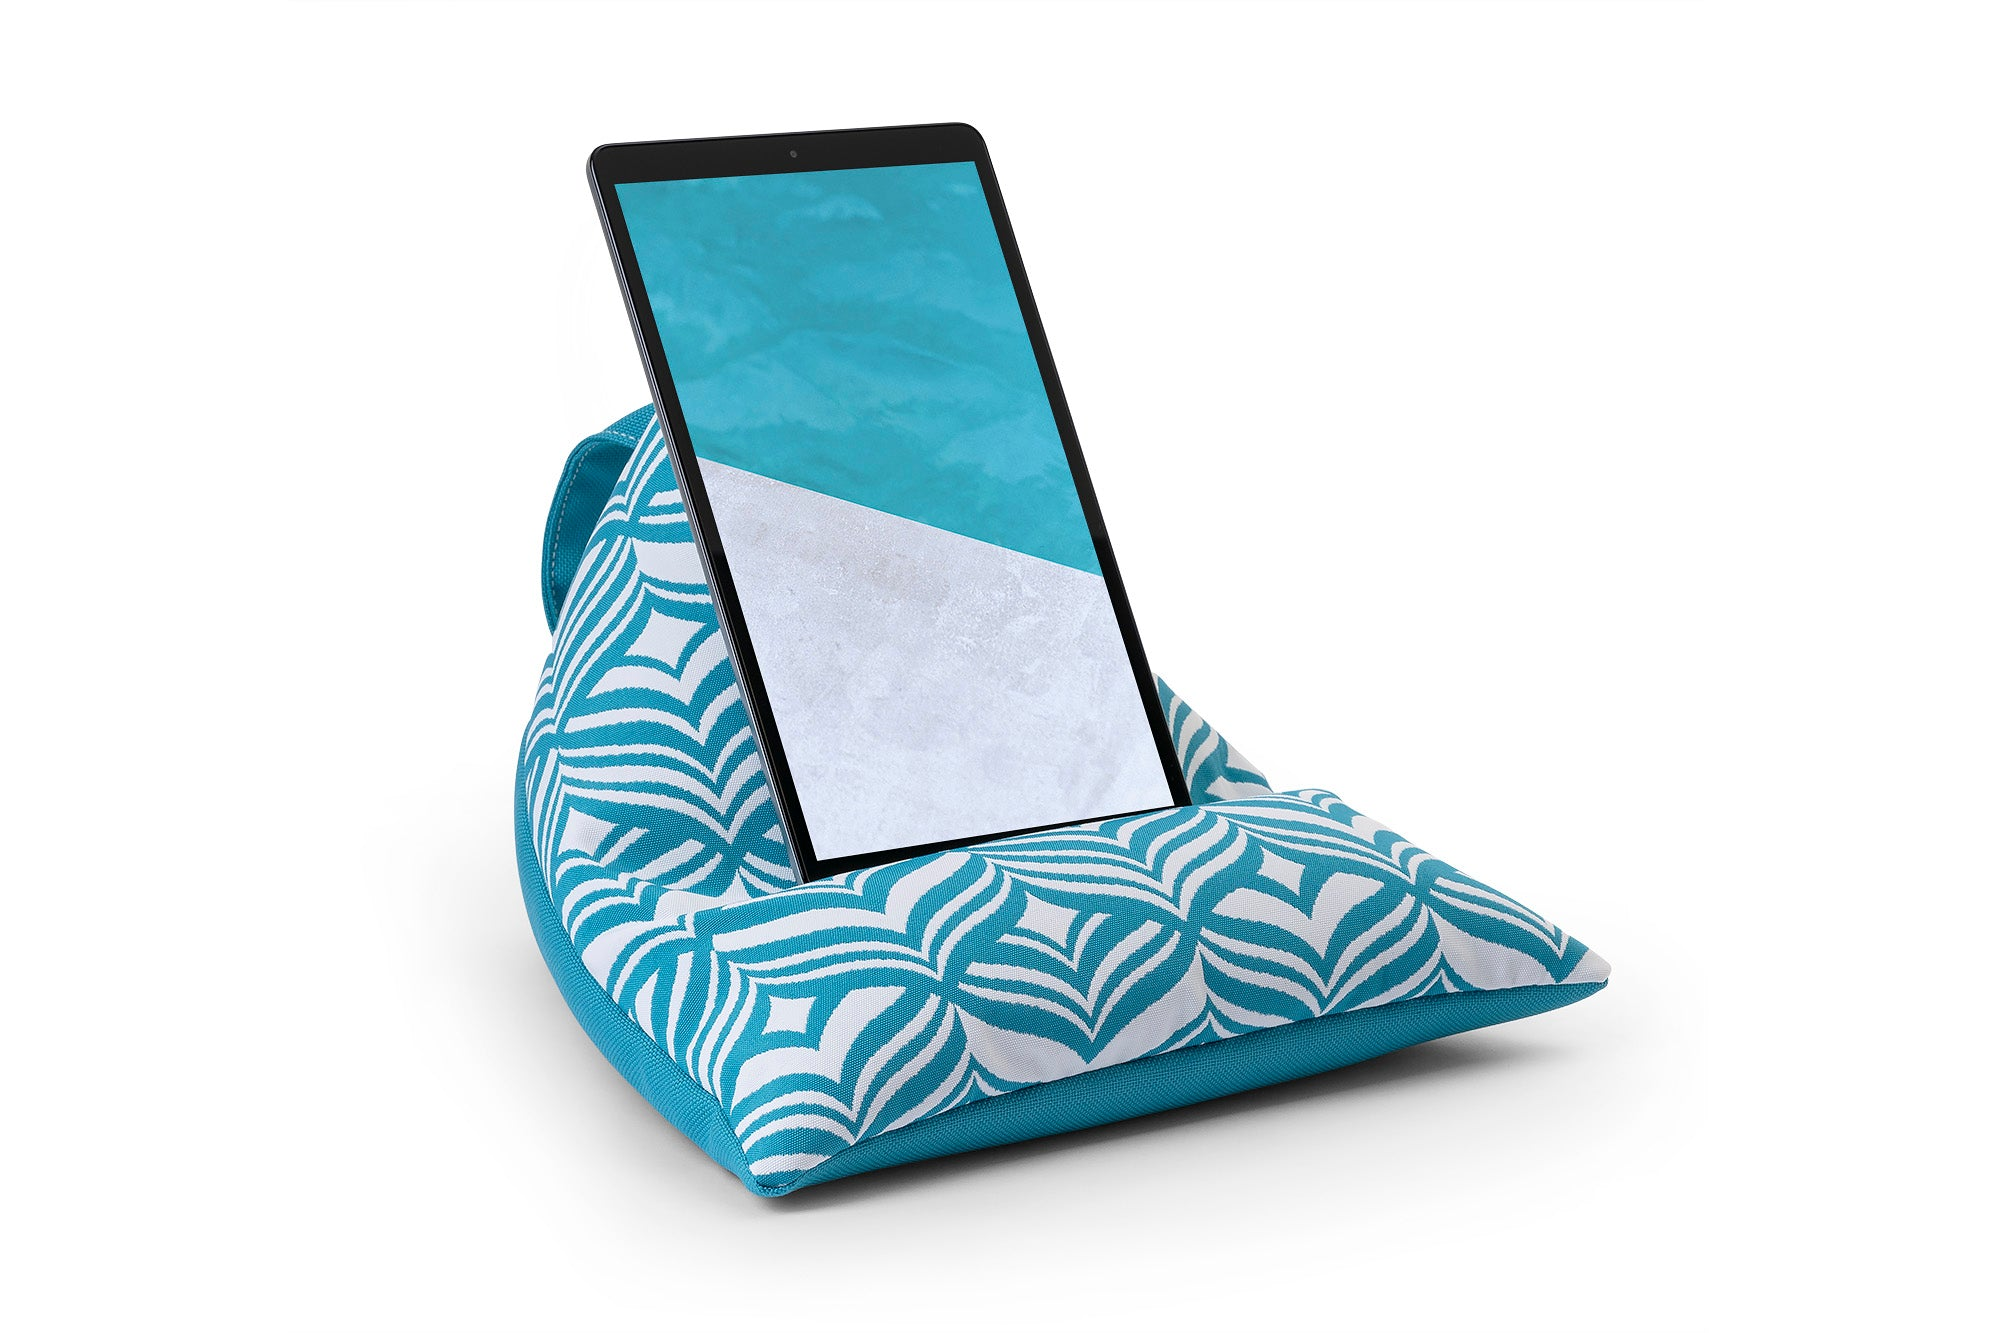 iPad, Tablet & eReader Bean Bag Stand in Tulip Turquoise/Turquoise Base